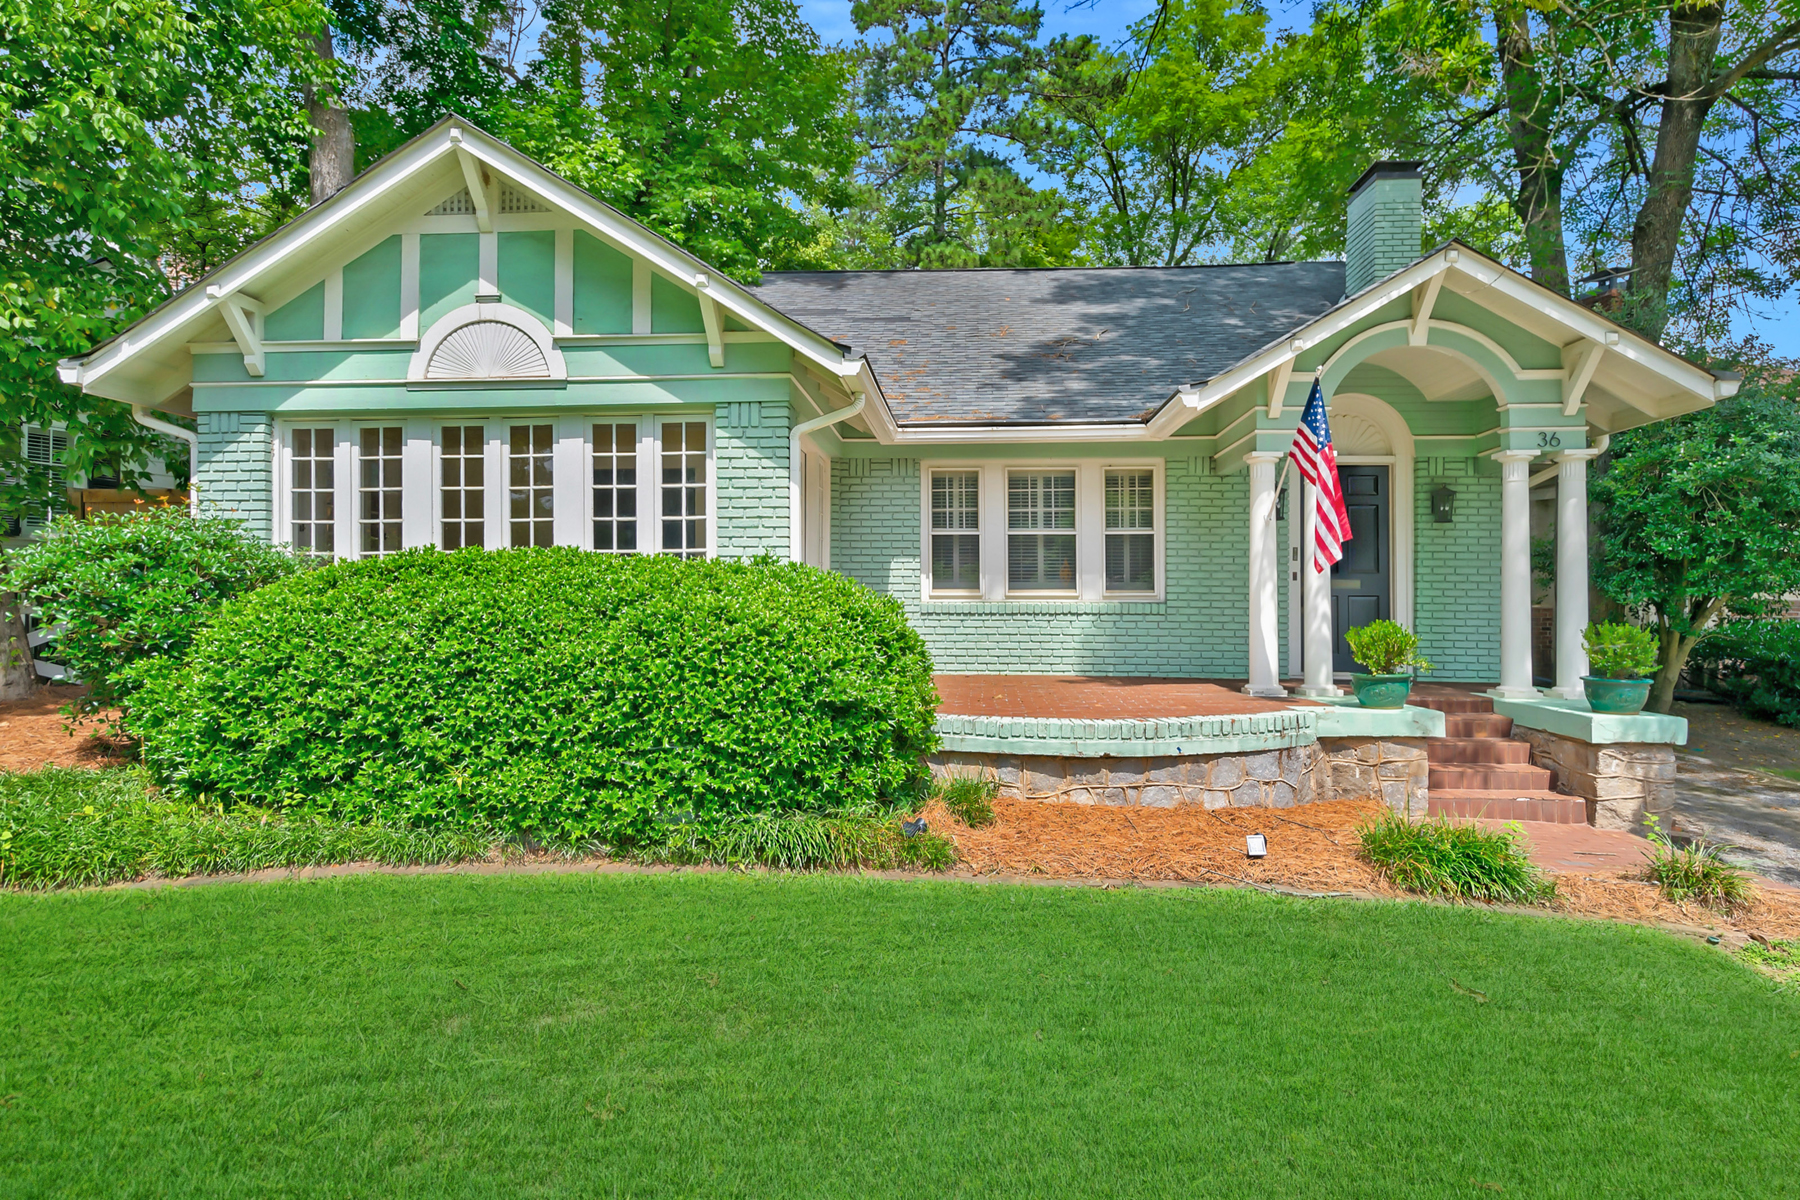 Single Family Homes für Verkauf beim Located Directly Across The Street From Ansley Golf Course 36 Polo Drive NE Atlanta, Georgia 30309 Vereinigte Staaten